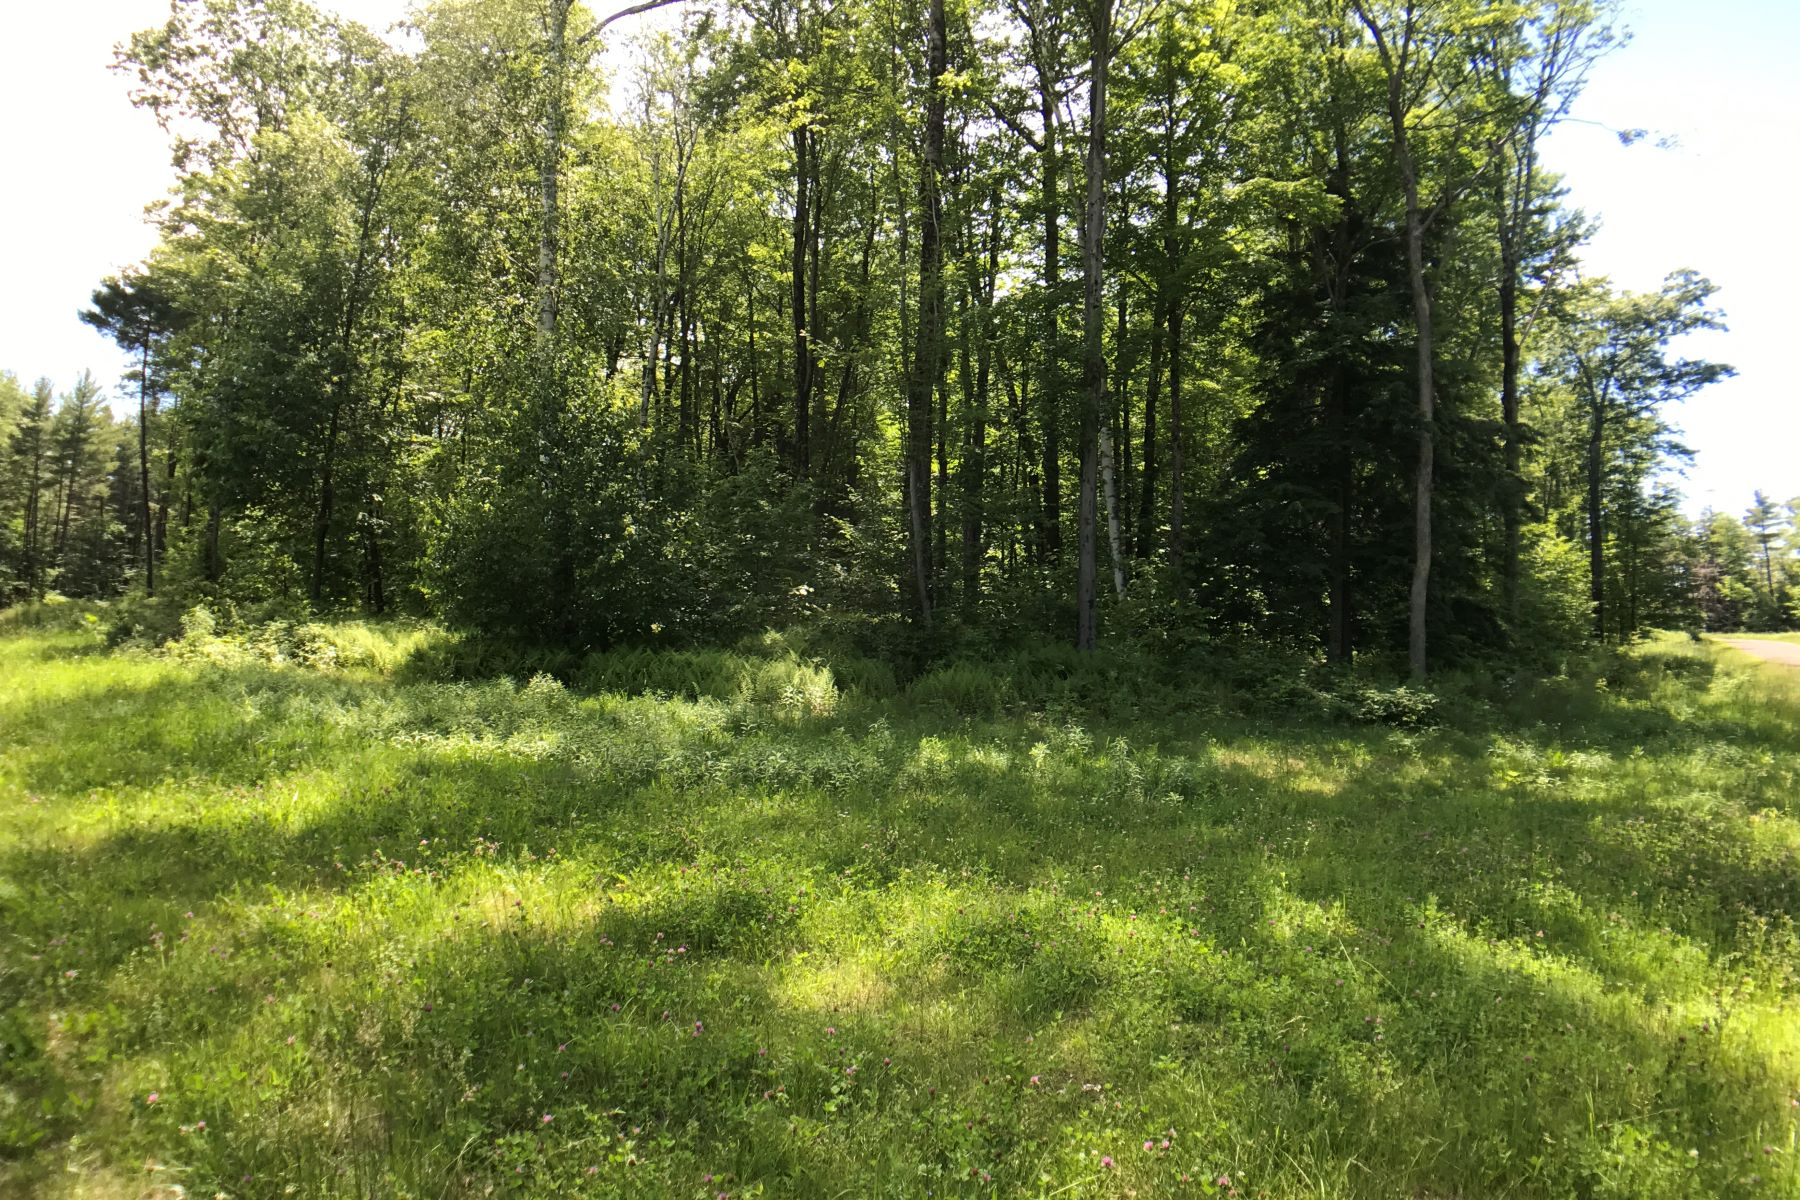 Terreno por un Venta en Affordable Ready-to-Build Parcel w/ Shared Waterfront Access. Lot 2 Moose Dr Lee, Massachusetts 01238 Estados Unidos